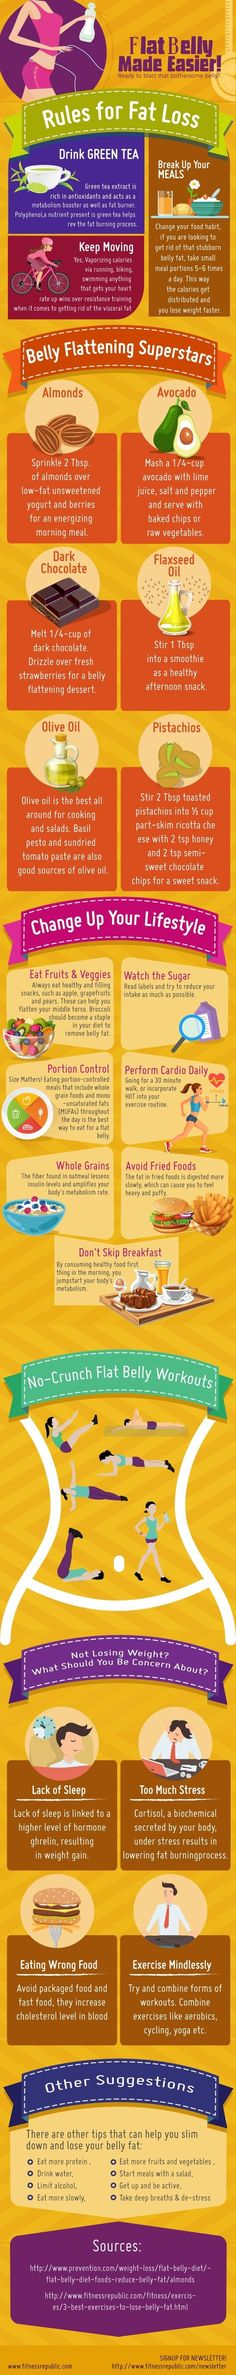 These 10 Graphs to Help You Lose Weight are THE BEST! I already STARTED LOSING WEIGHT as soon as I started following some of them! The results are AWESOME! I'm so happy I found this! Definitely pinning for later! #weightlosstips